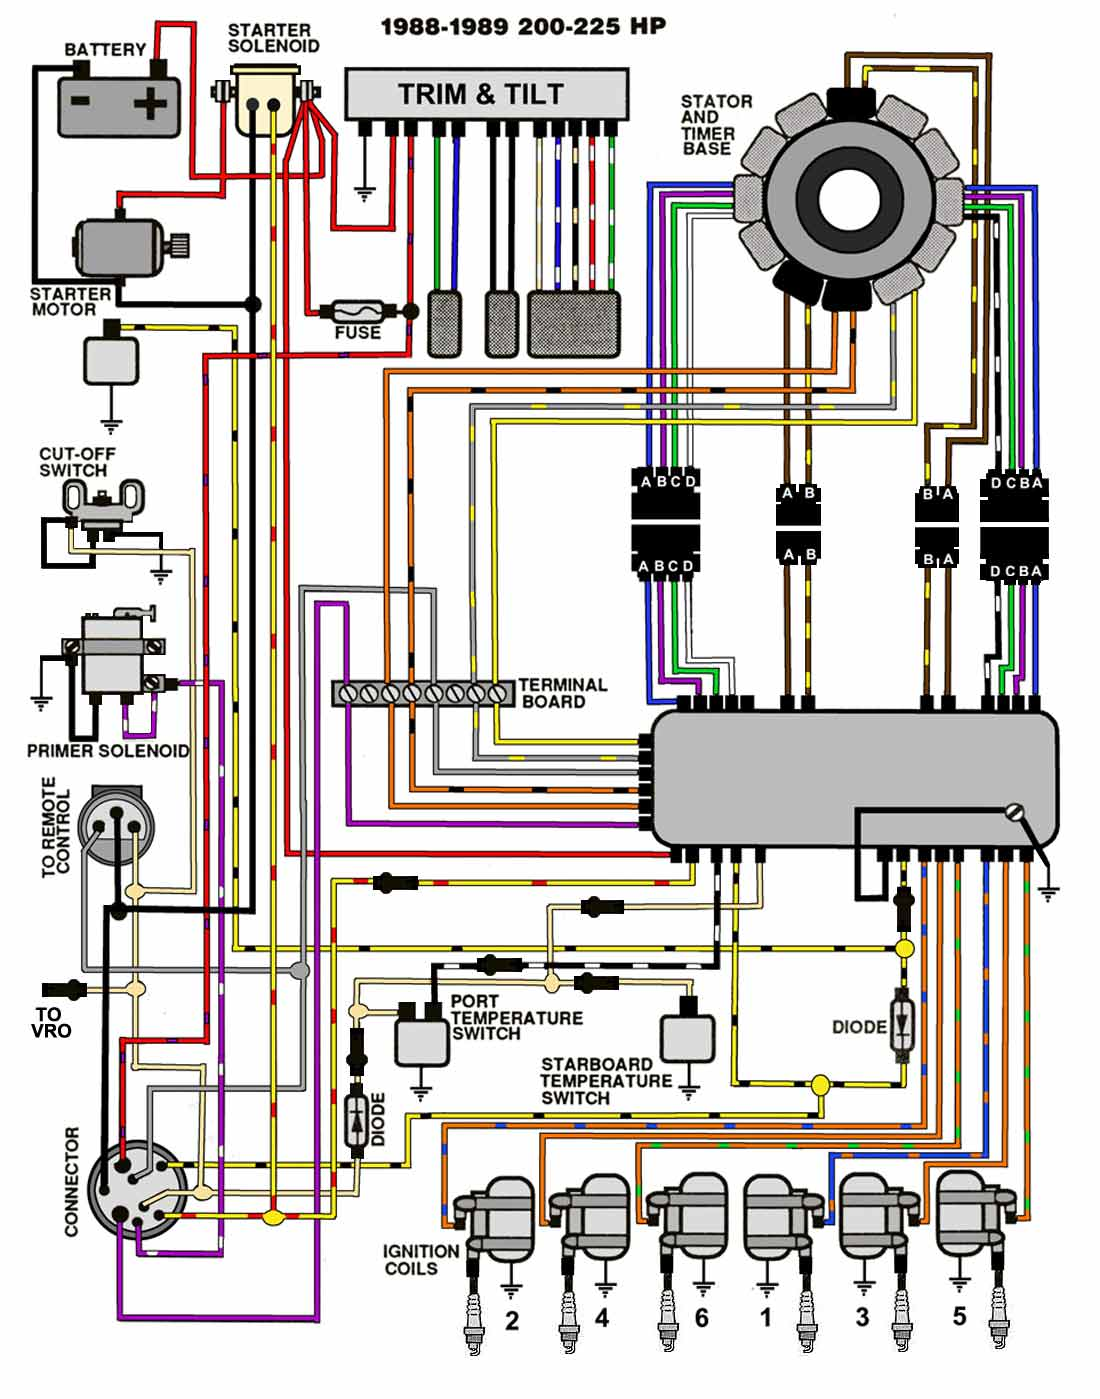 1988_89_200_225 mastertech marine evinrude johnson outboard wiring diagrams  at soozxer.org